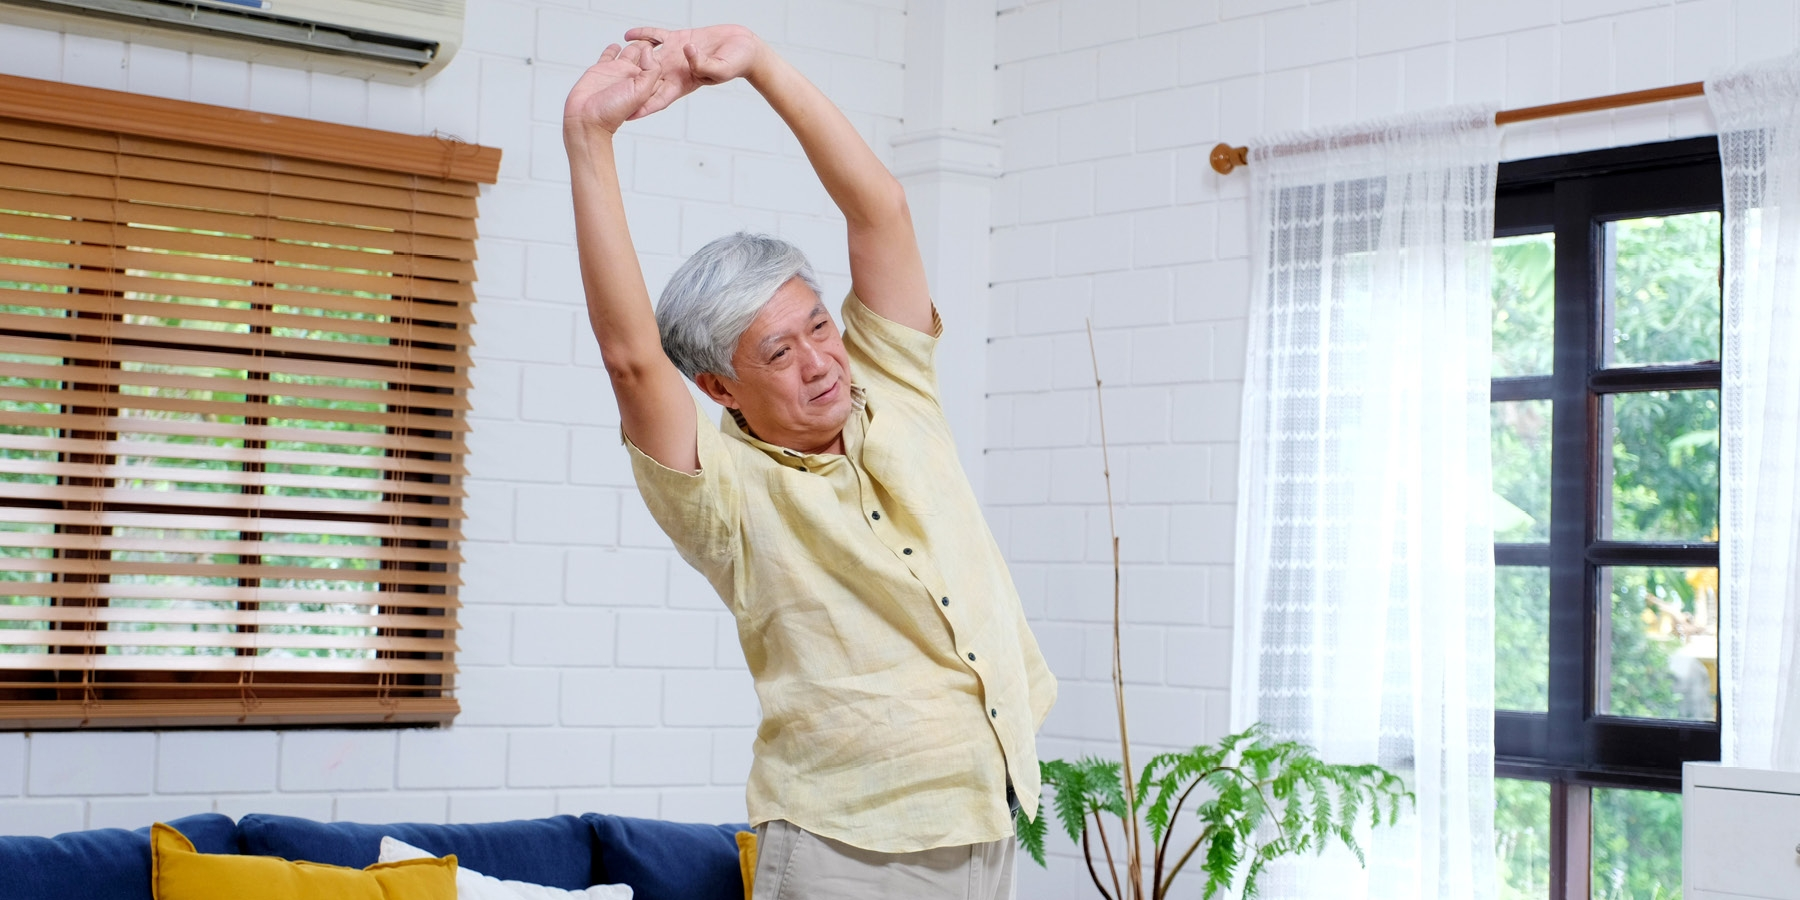 Older gentleman stretching with arms above head